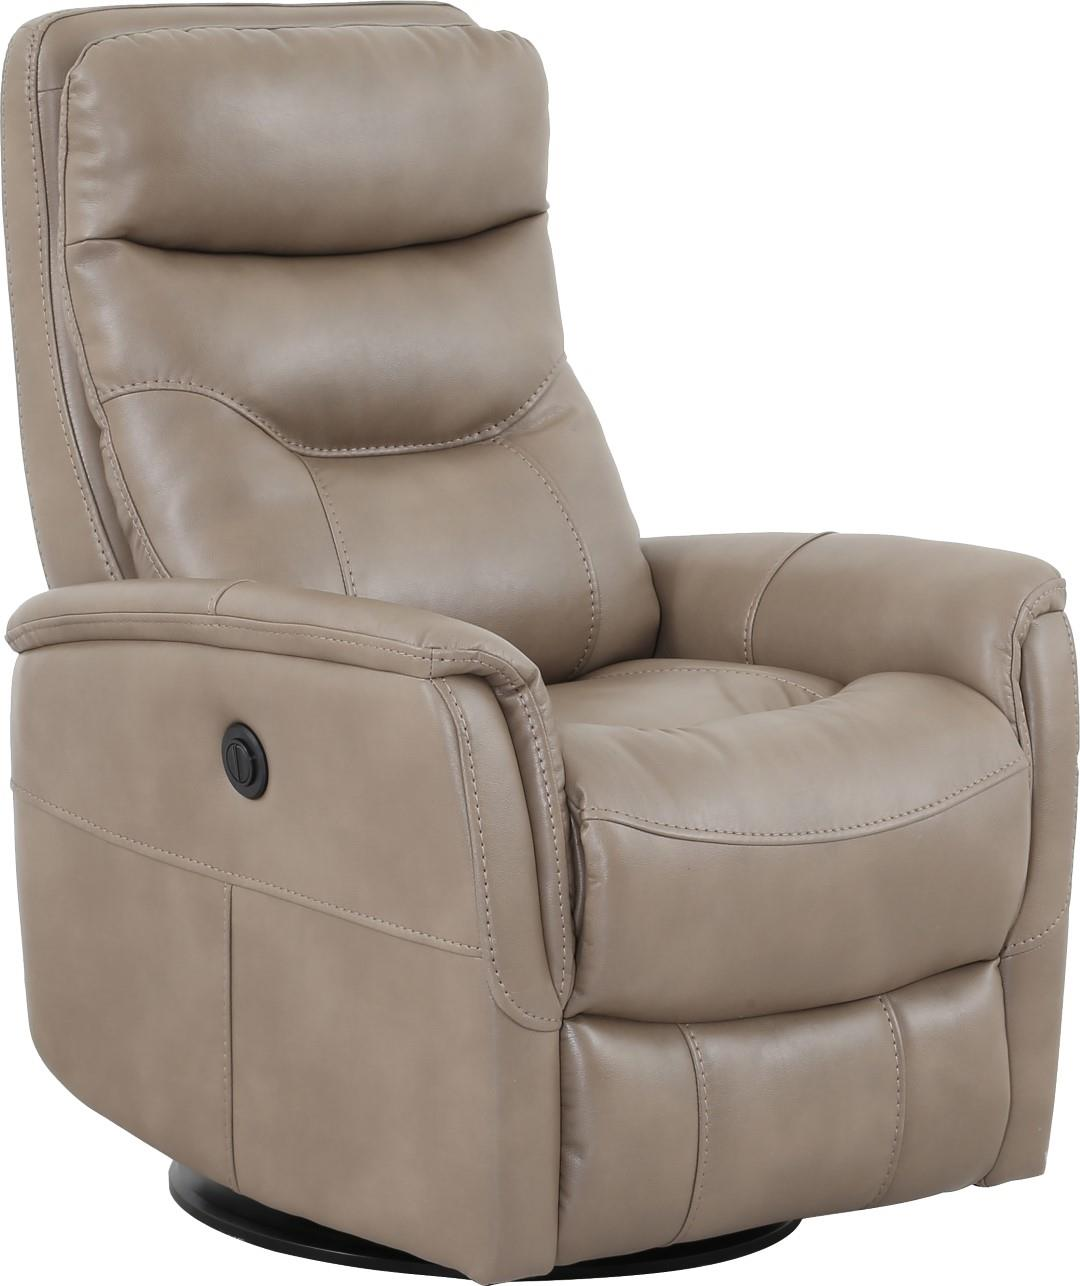 home taupe mgemlin product adjustable recliner power furniture harrington recliners w headrest expand ergo